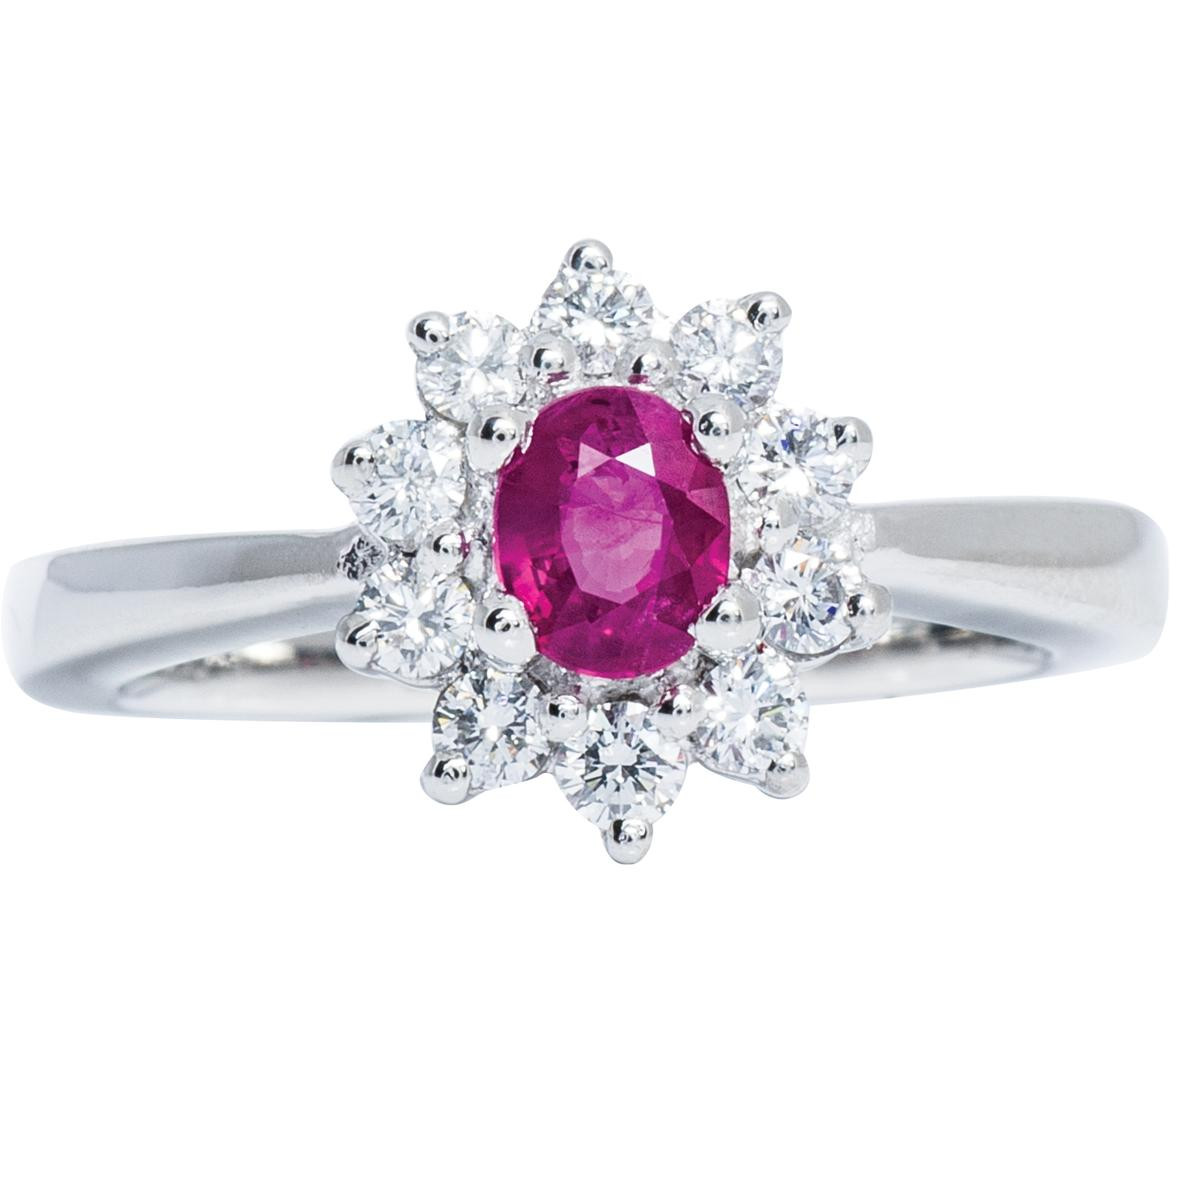 Vintage Diamond & Ruby Flower Cluster Ring